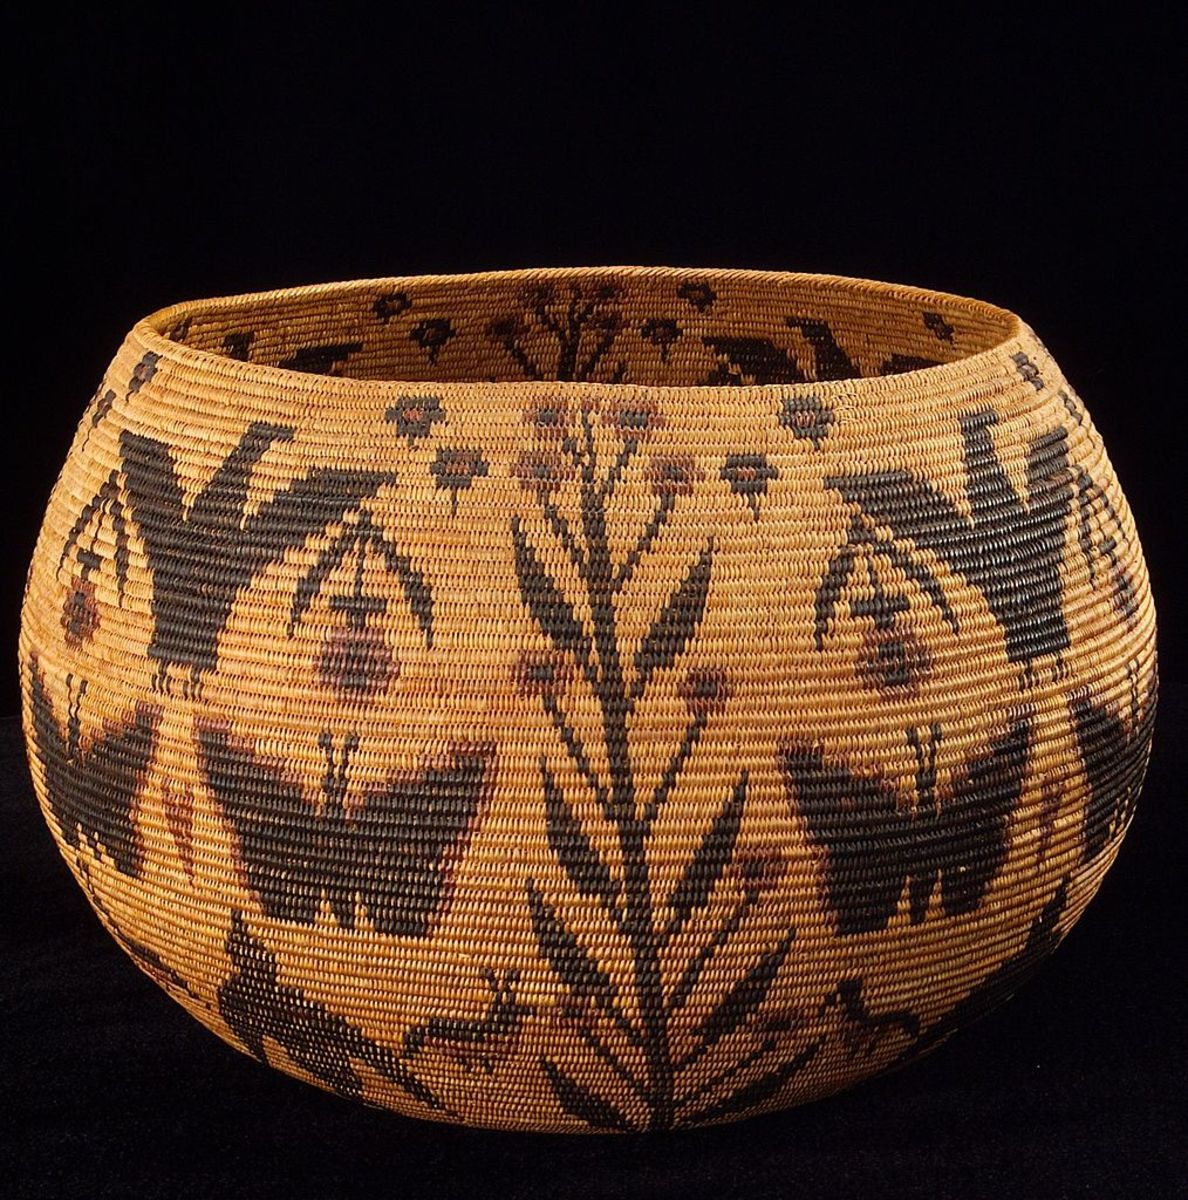 Basket made by Lucy Telles in the Smithsonian's National Museum of the American Indian.